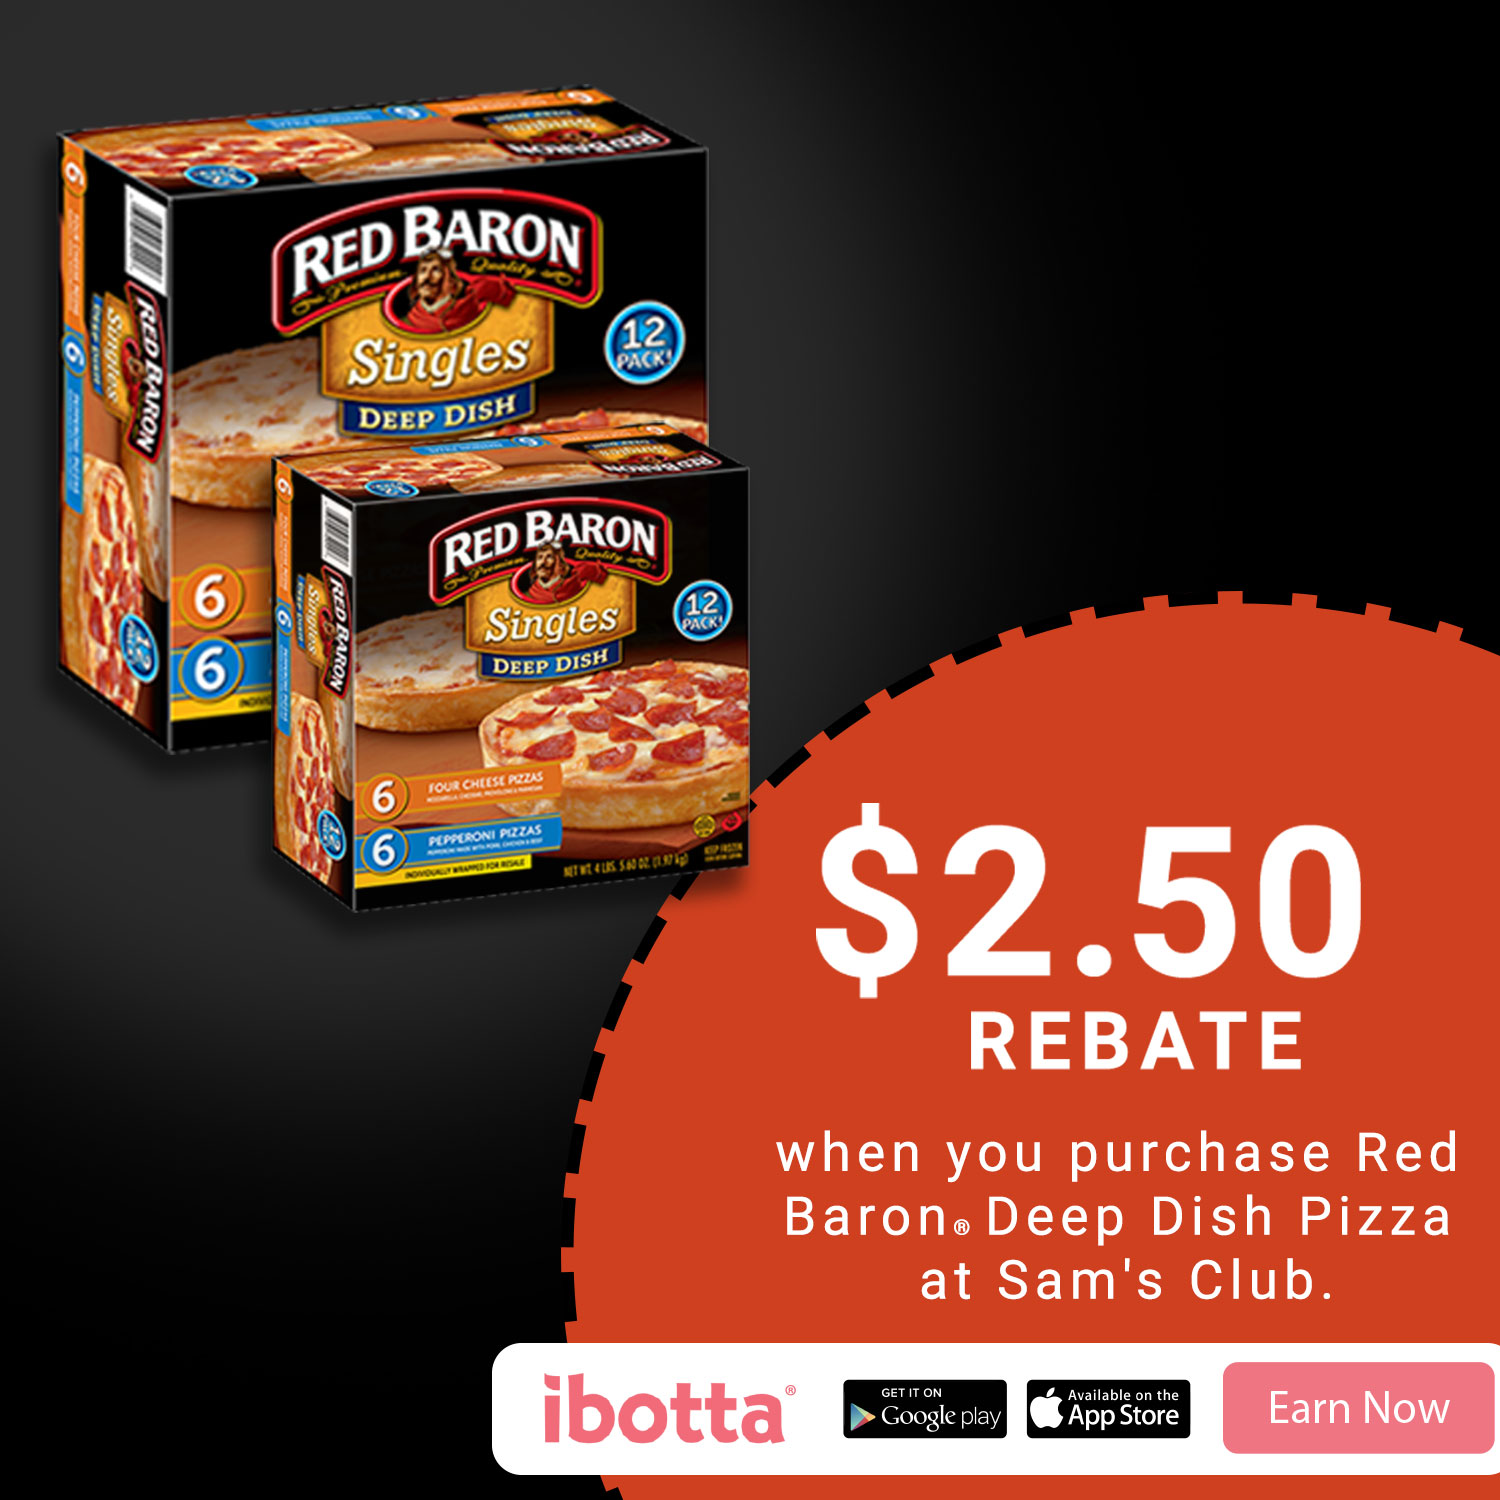 Buy Red Baron® Deep Dish Pizzas at Sam's Club, & earn $2.50! #RedBaronHolidaySavings #CollectiveBias #ad